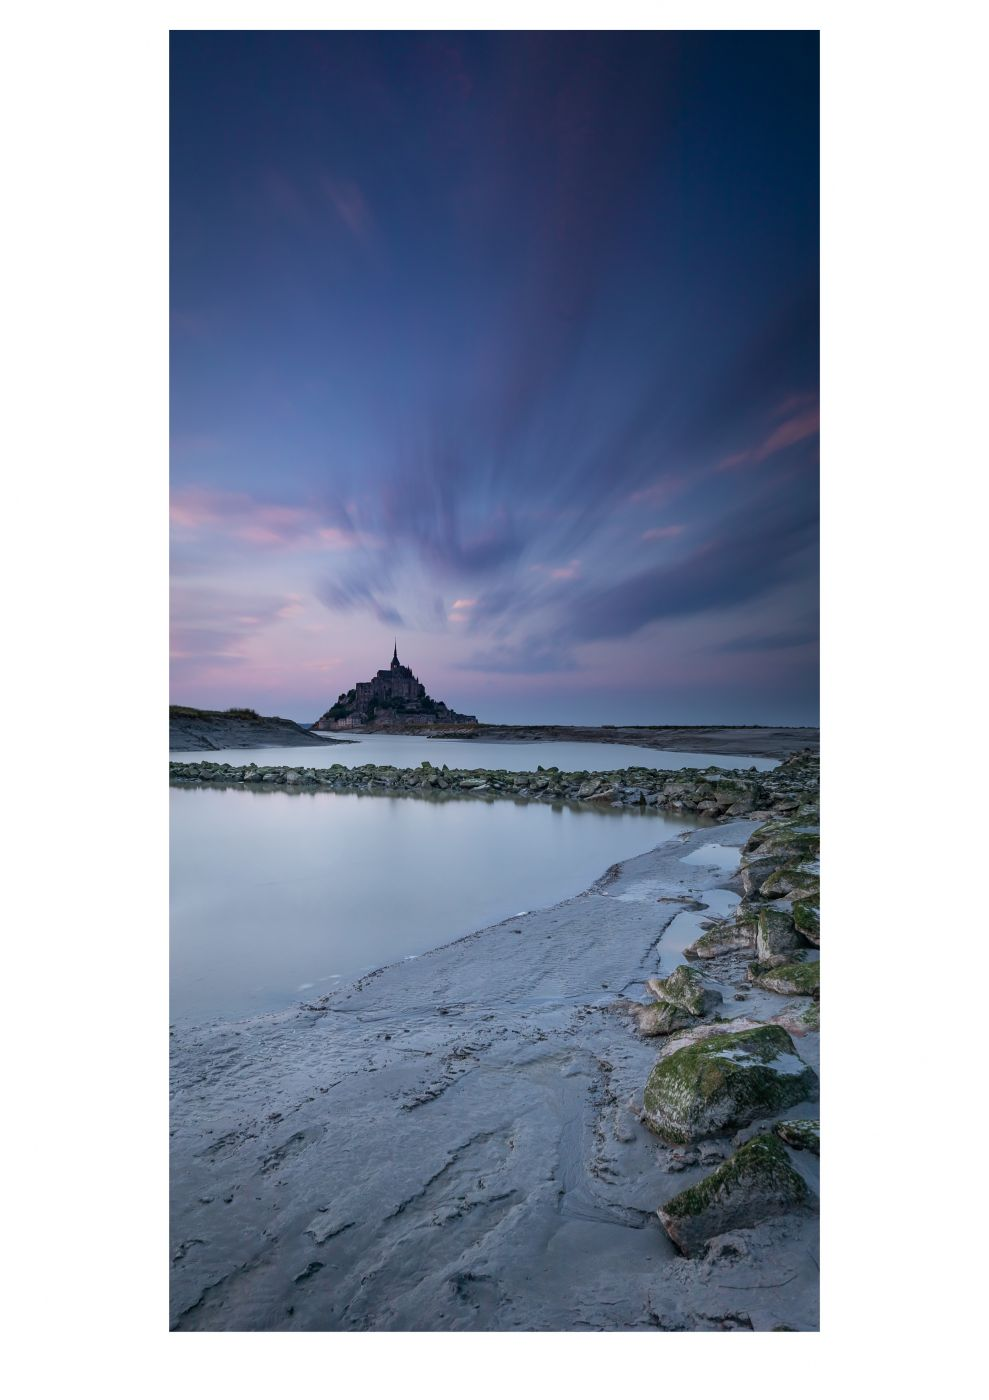 Le Mont Saint-Michel- From the water, France